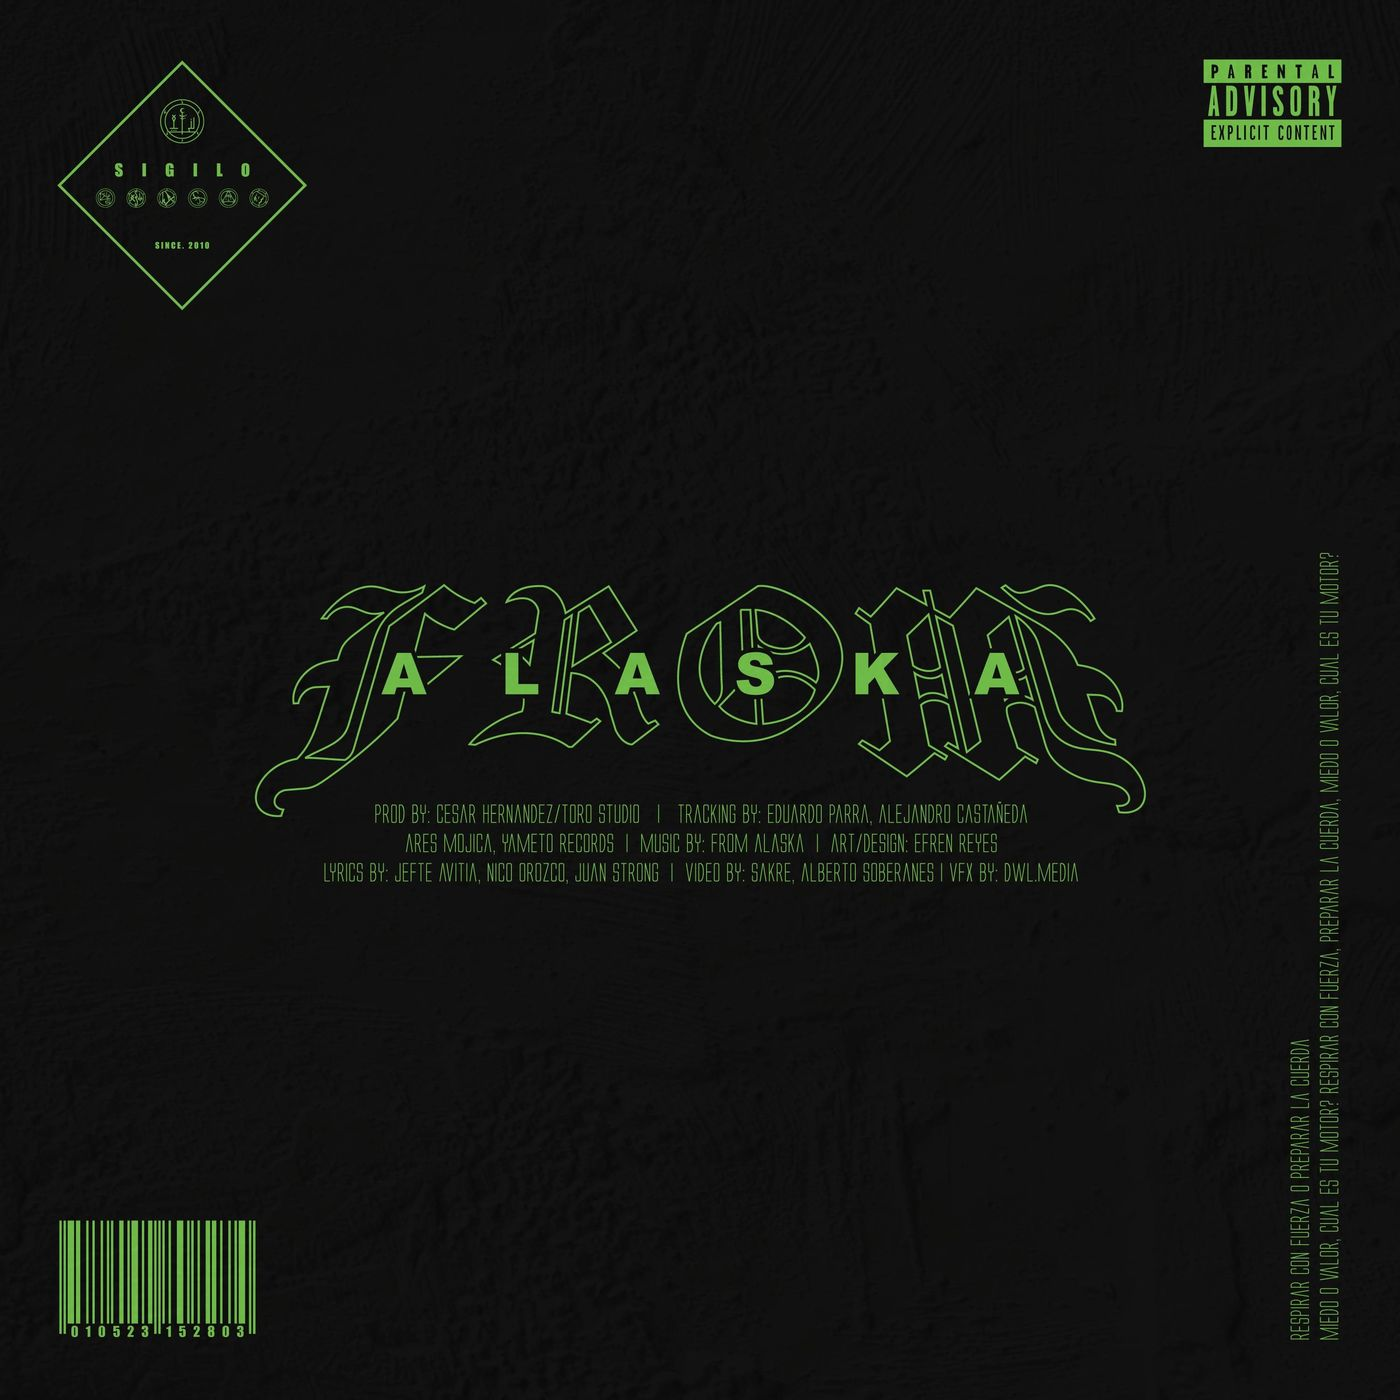 From Alaska - Sigilo [single] (2021)